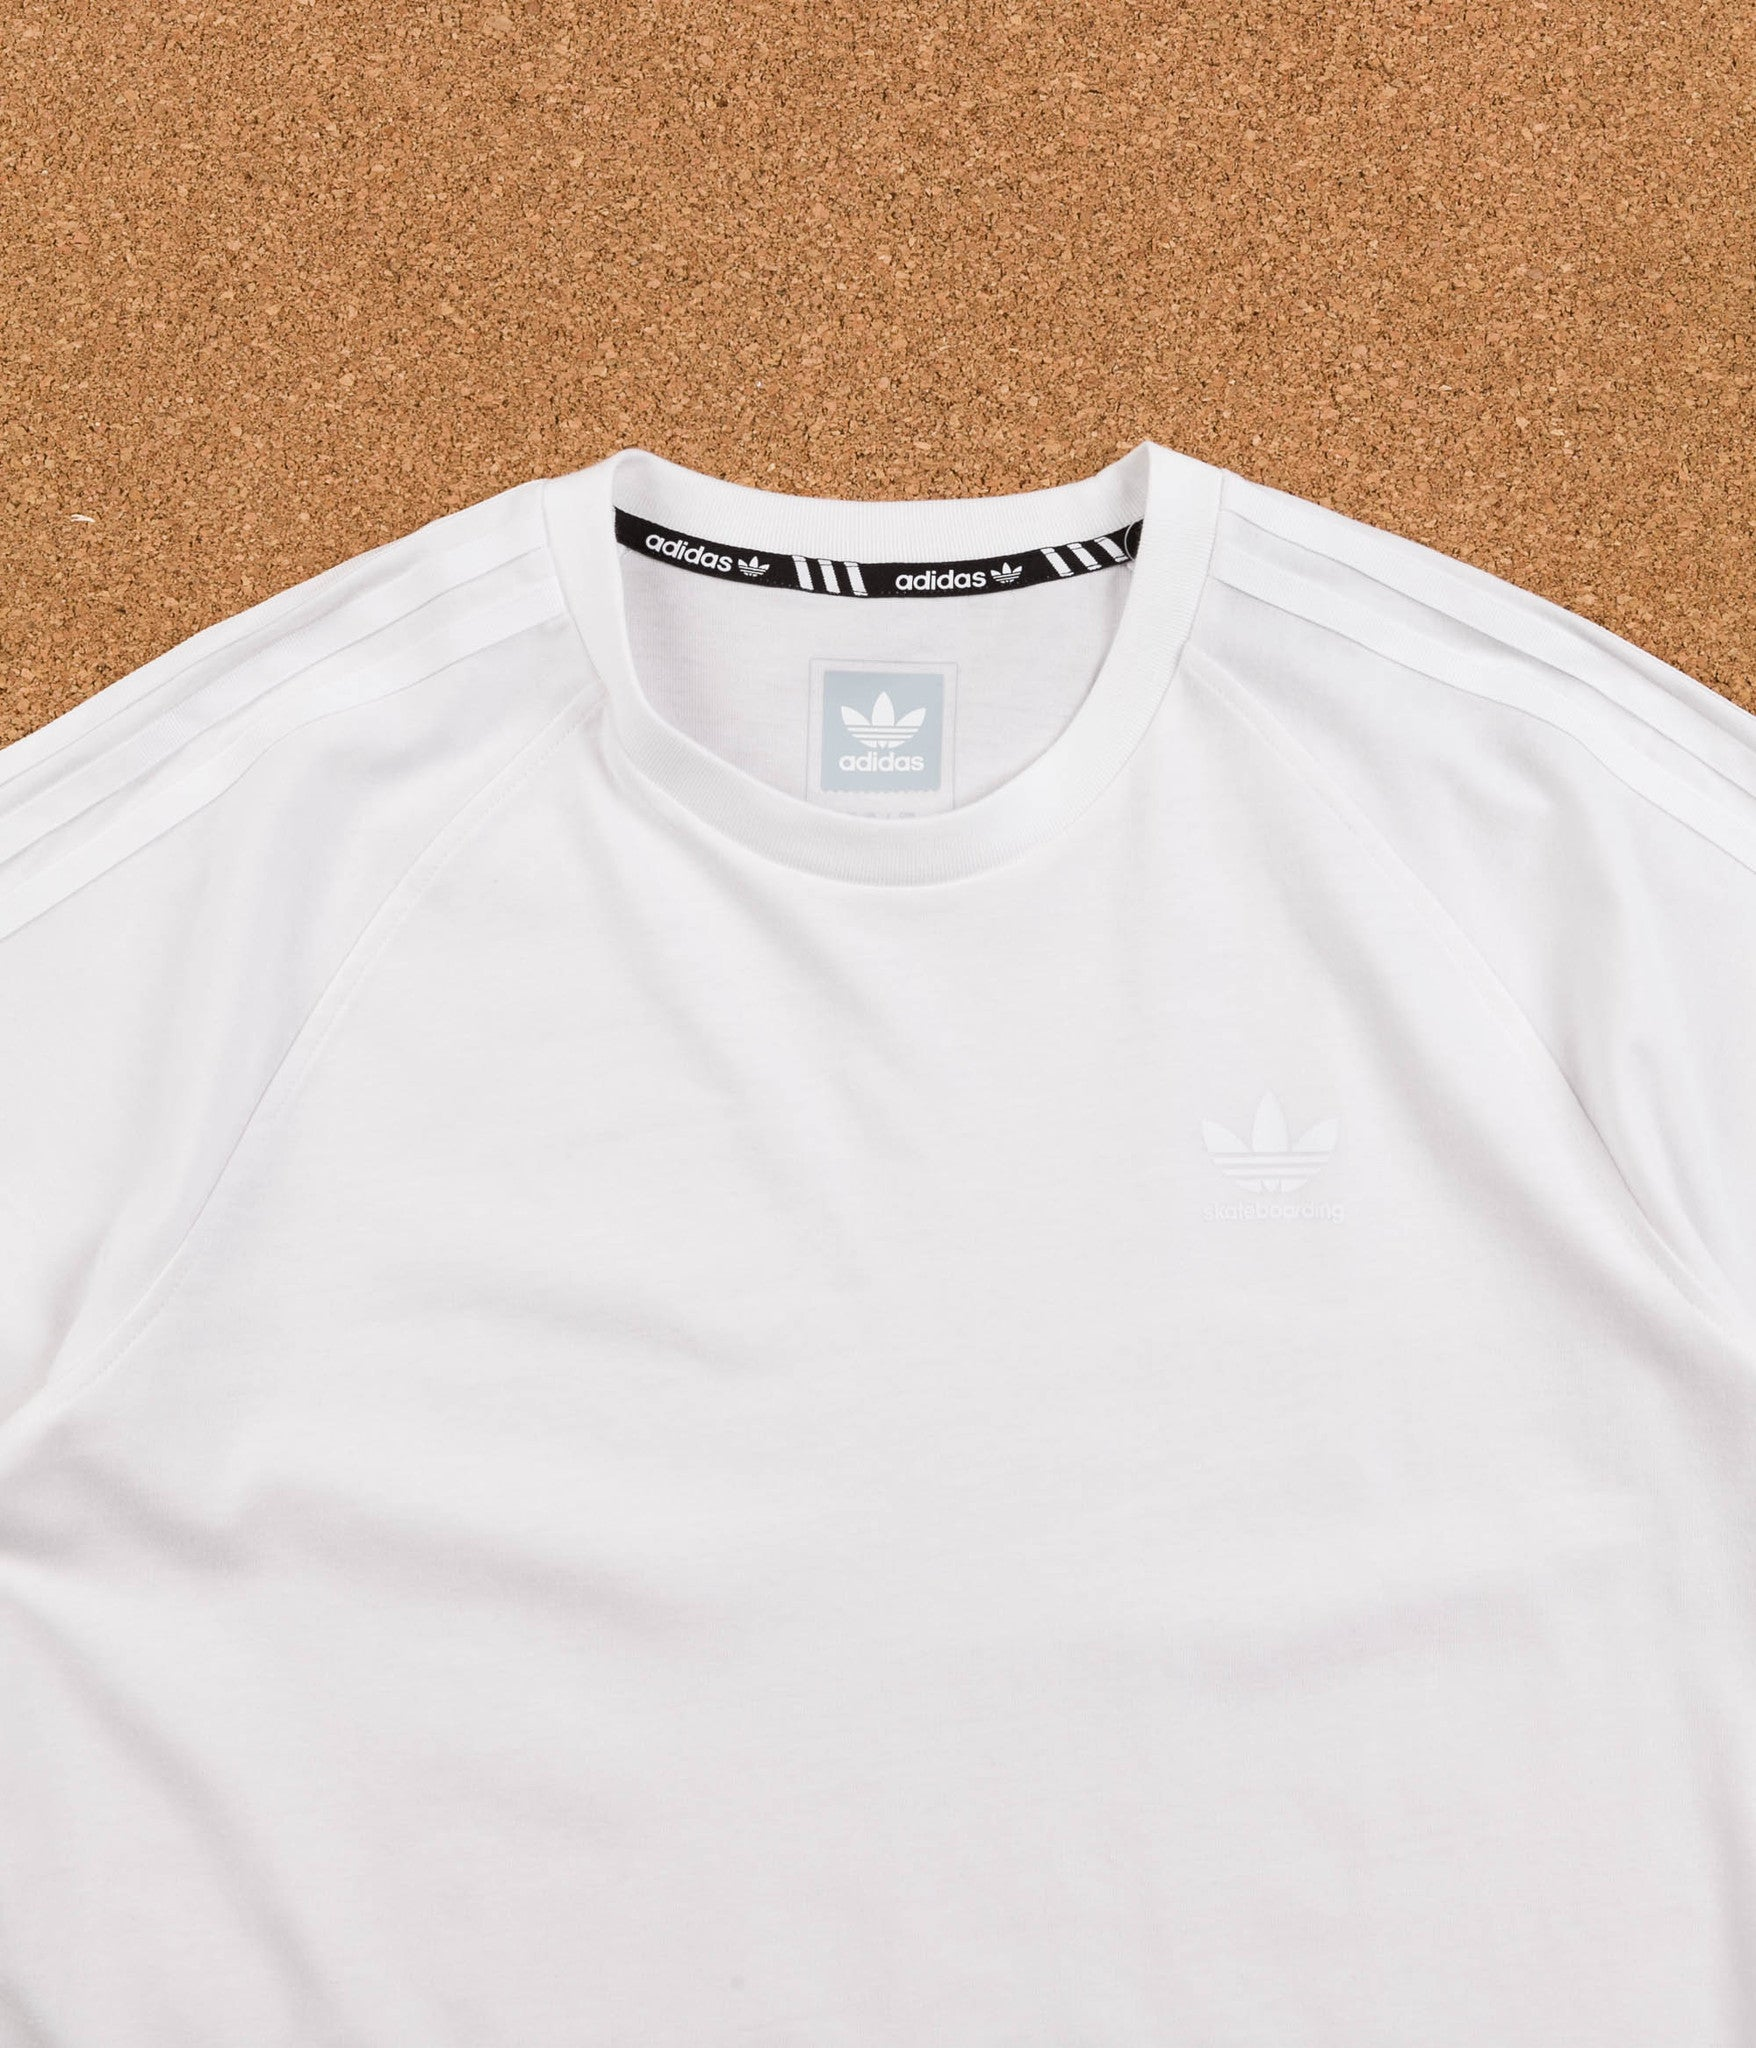 Adidas California 2.0 T-Shirt - White